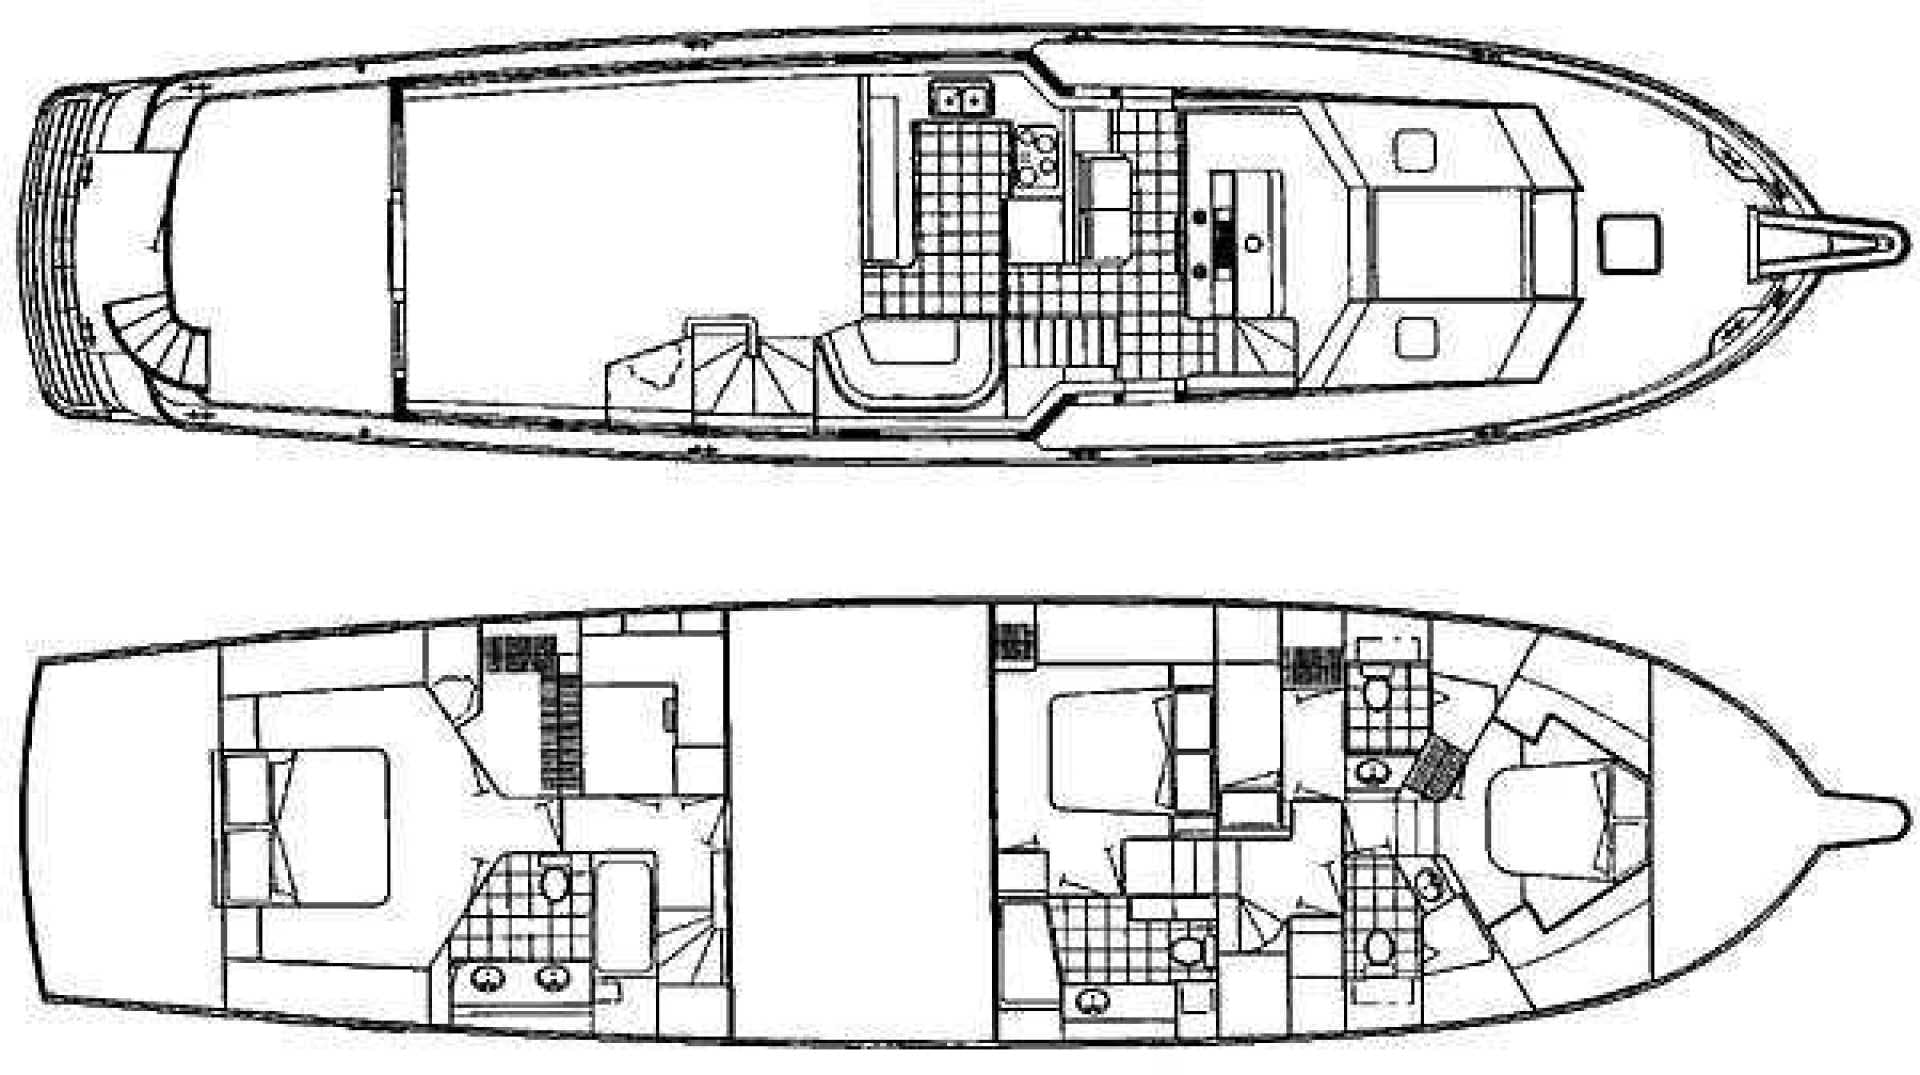 1998 Hatteras 74' Sport Deck Motor Yacht I GOT YOU | Picture 8 of 40